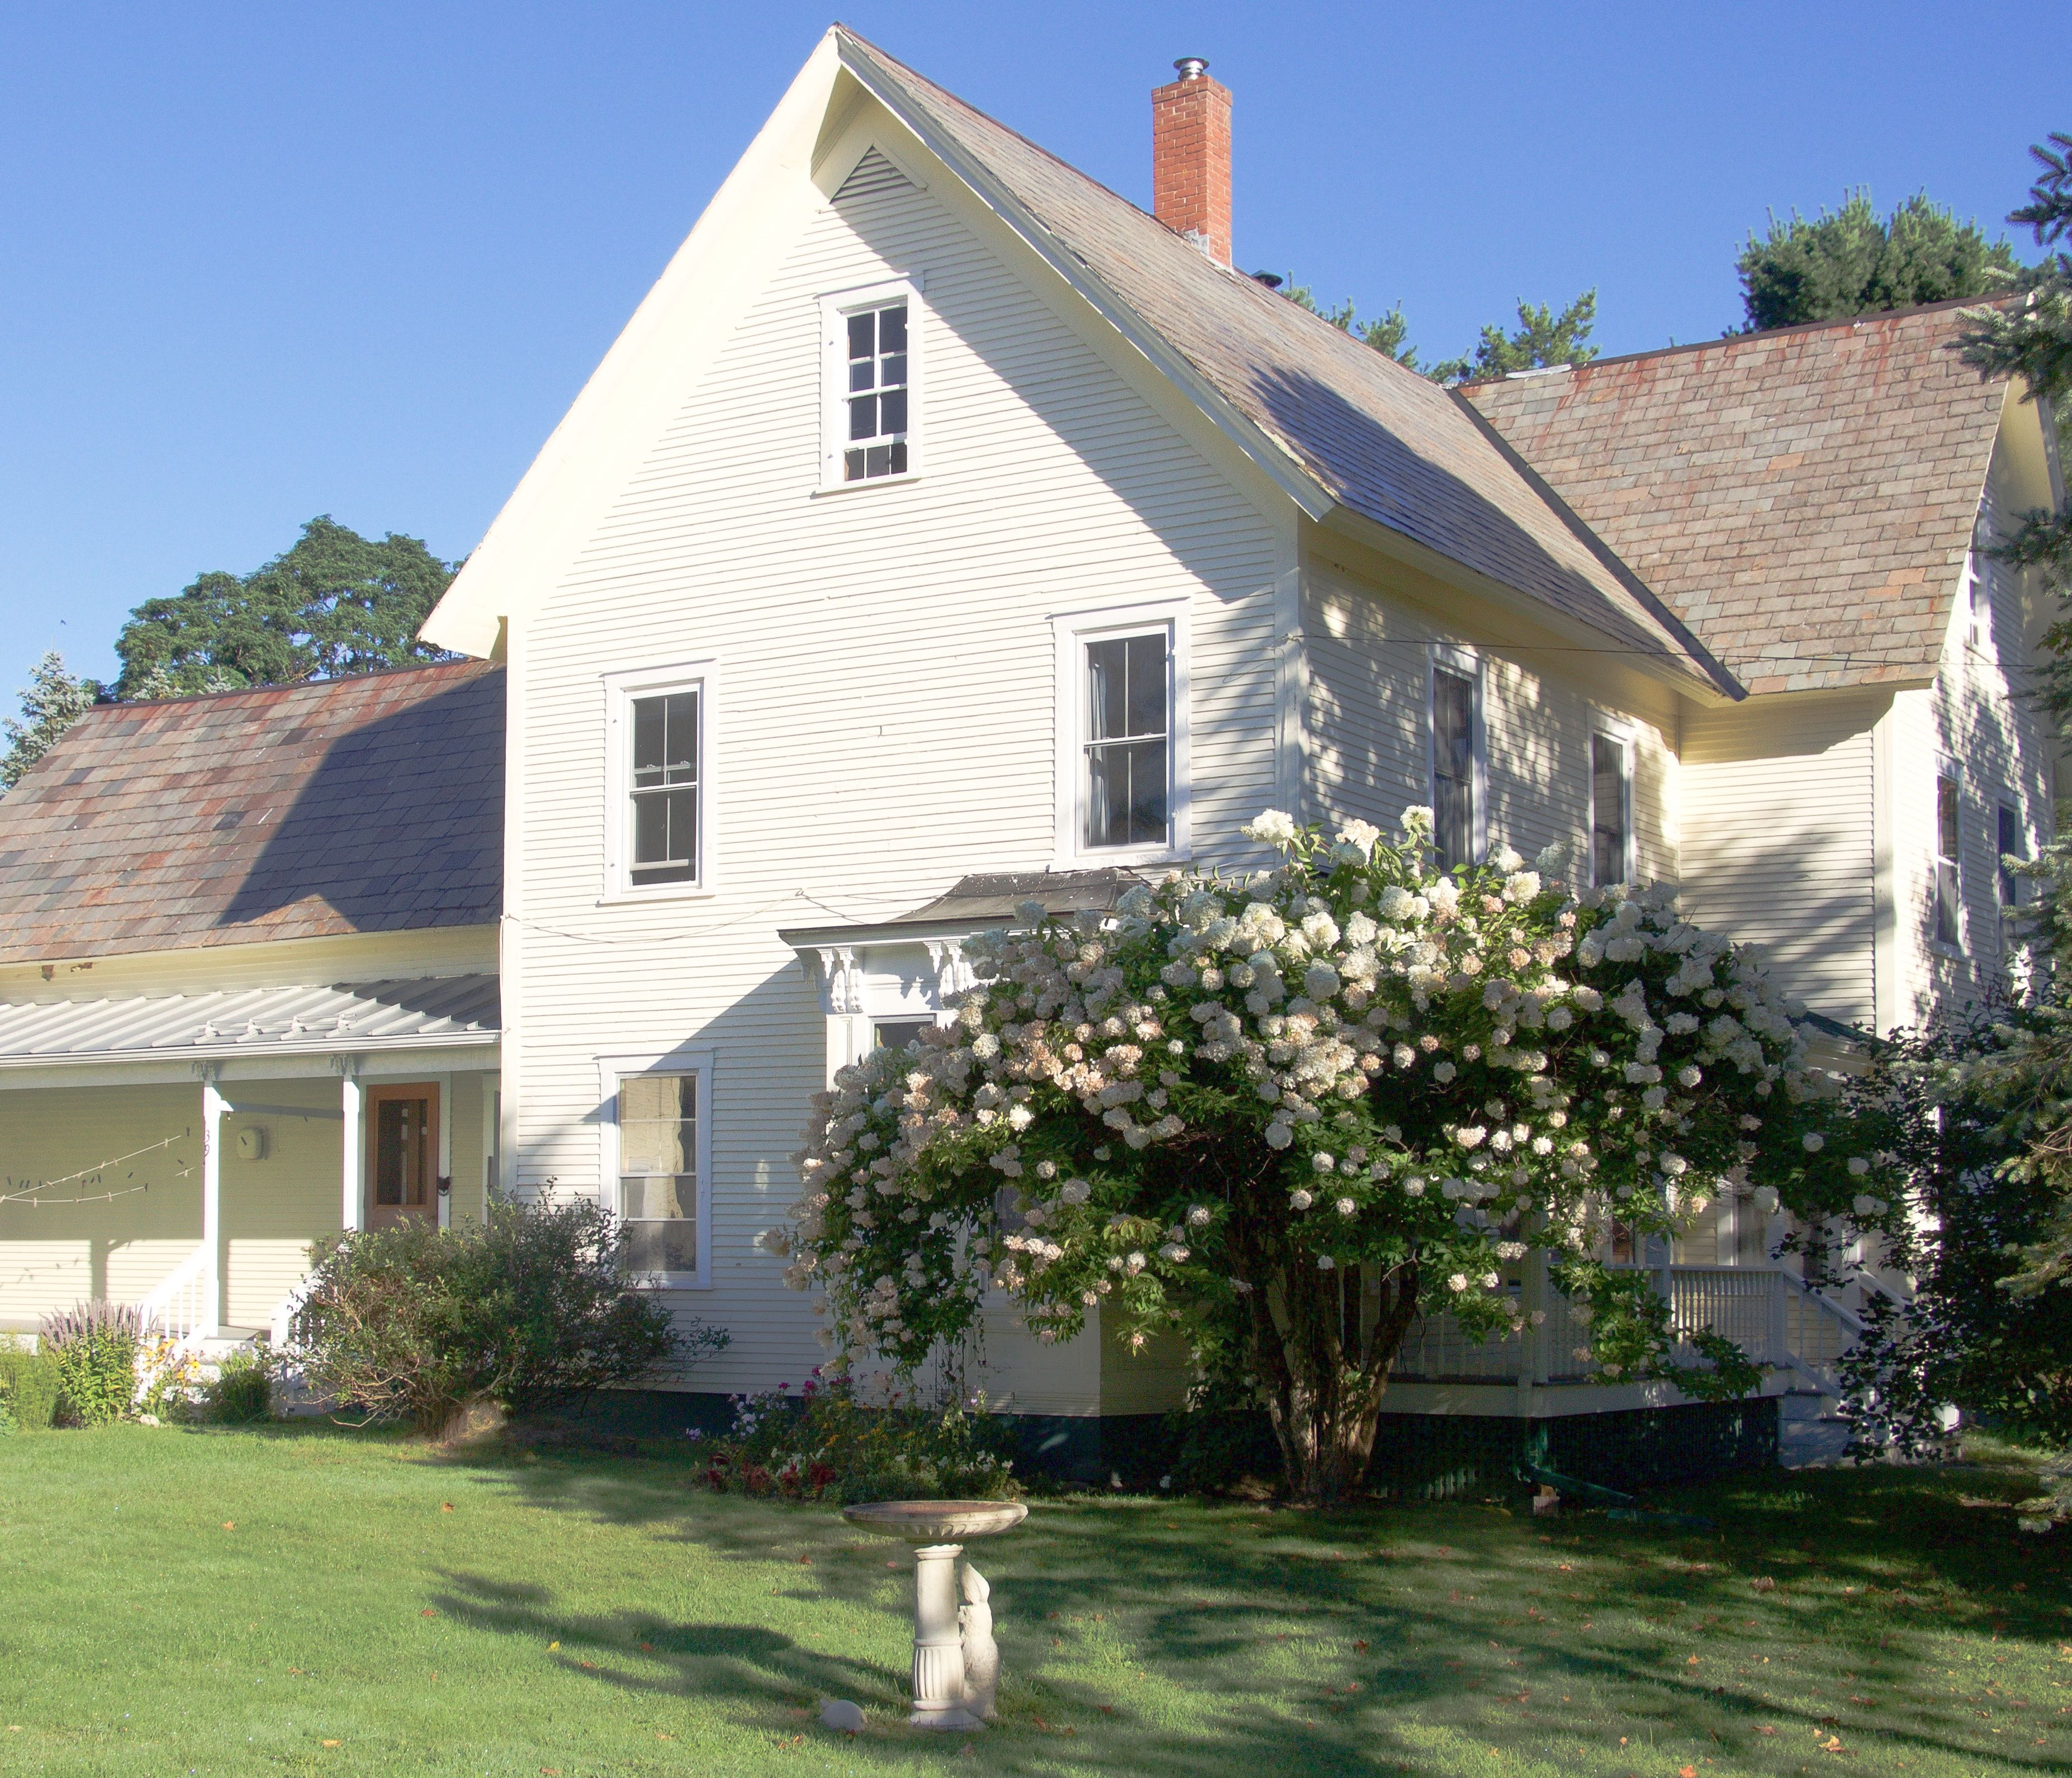 Single Family Home for Sale at 39 Quaker, Lincoln 39 Quaker St Lincoln, Vermont, 05443 United States